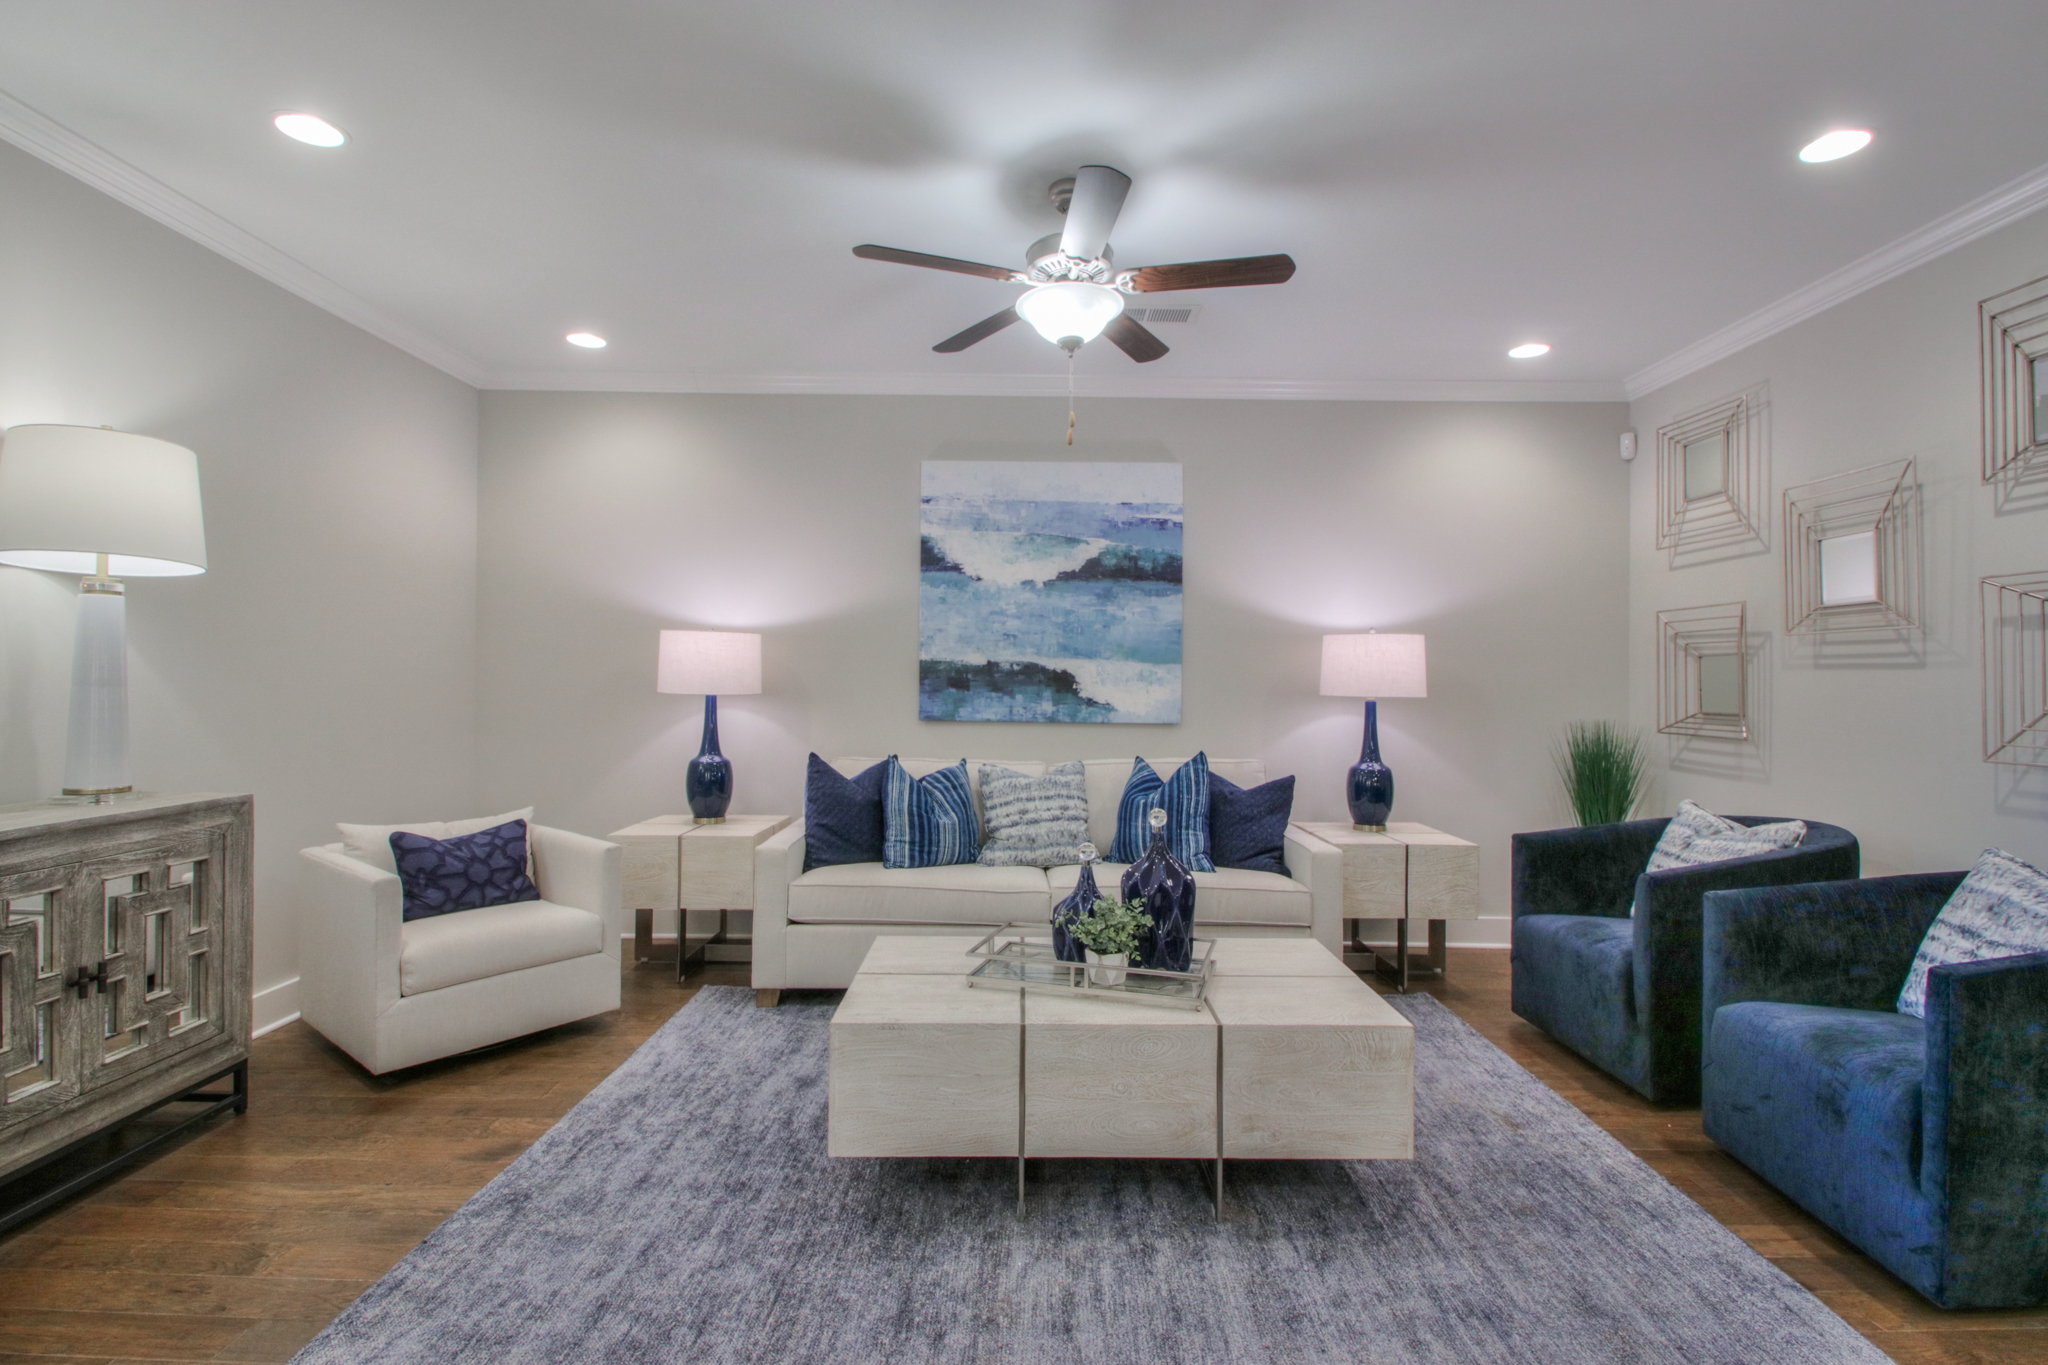 Real estate: Townhomes offer spacious floor plans plus low ... on house plans in ms, house plans generator, house plans timber, house plans rounded,